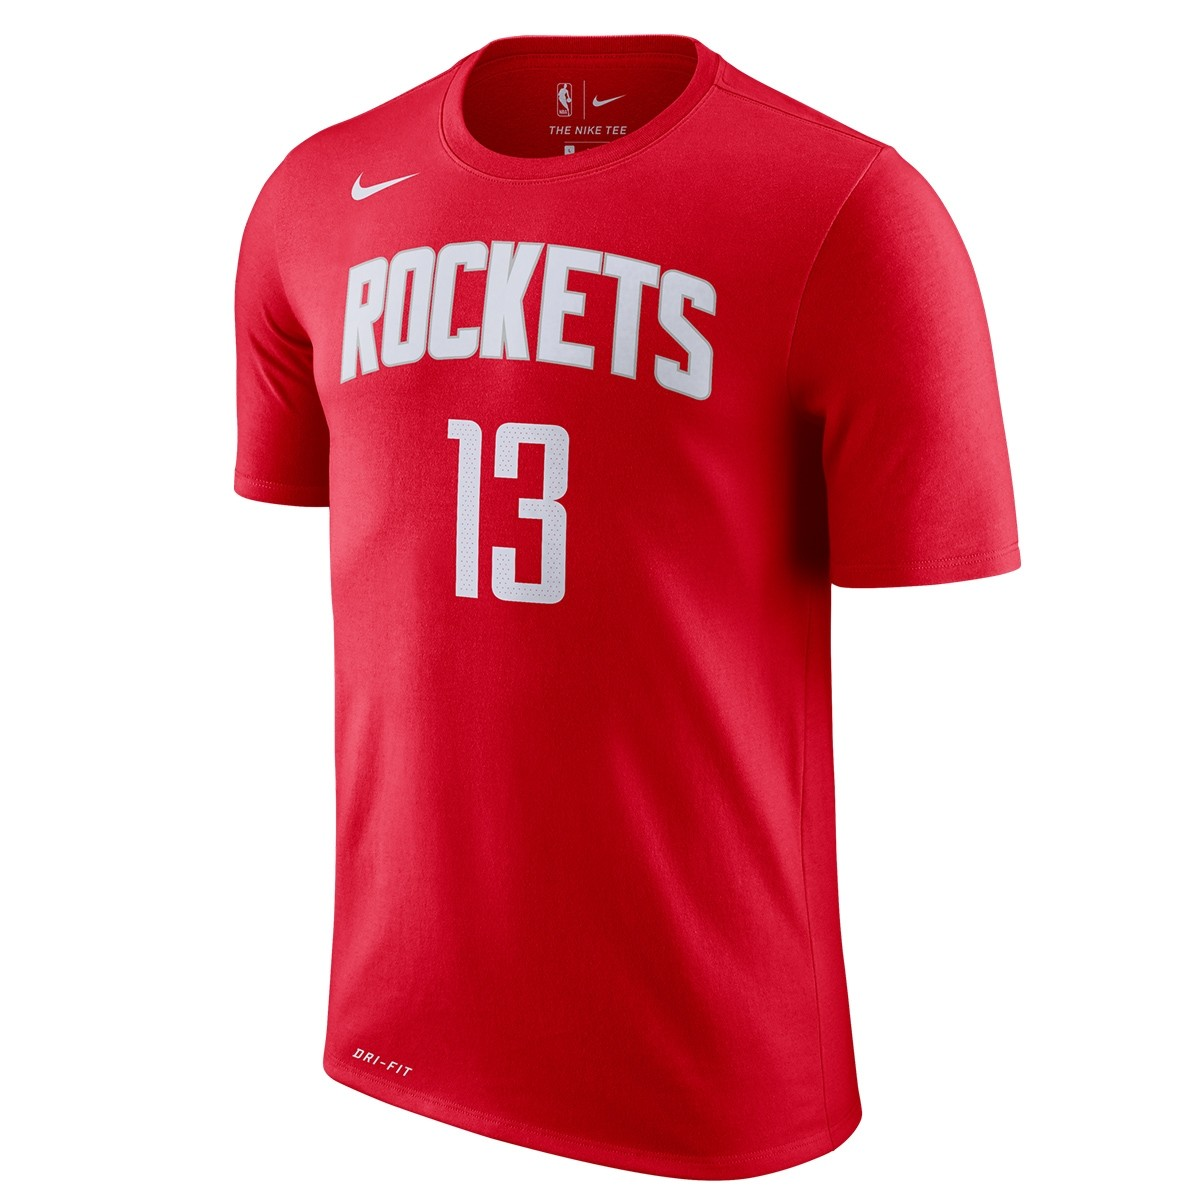 Nike NBA Rockets Nick Name Tee Harden 'Icon Edition'